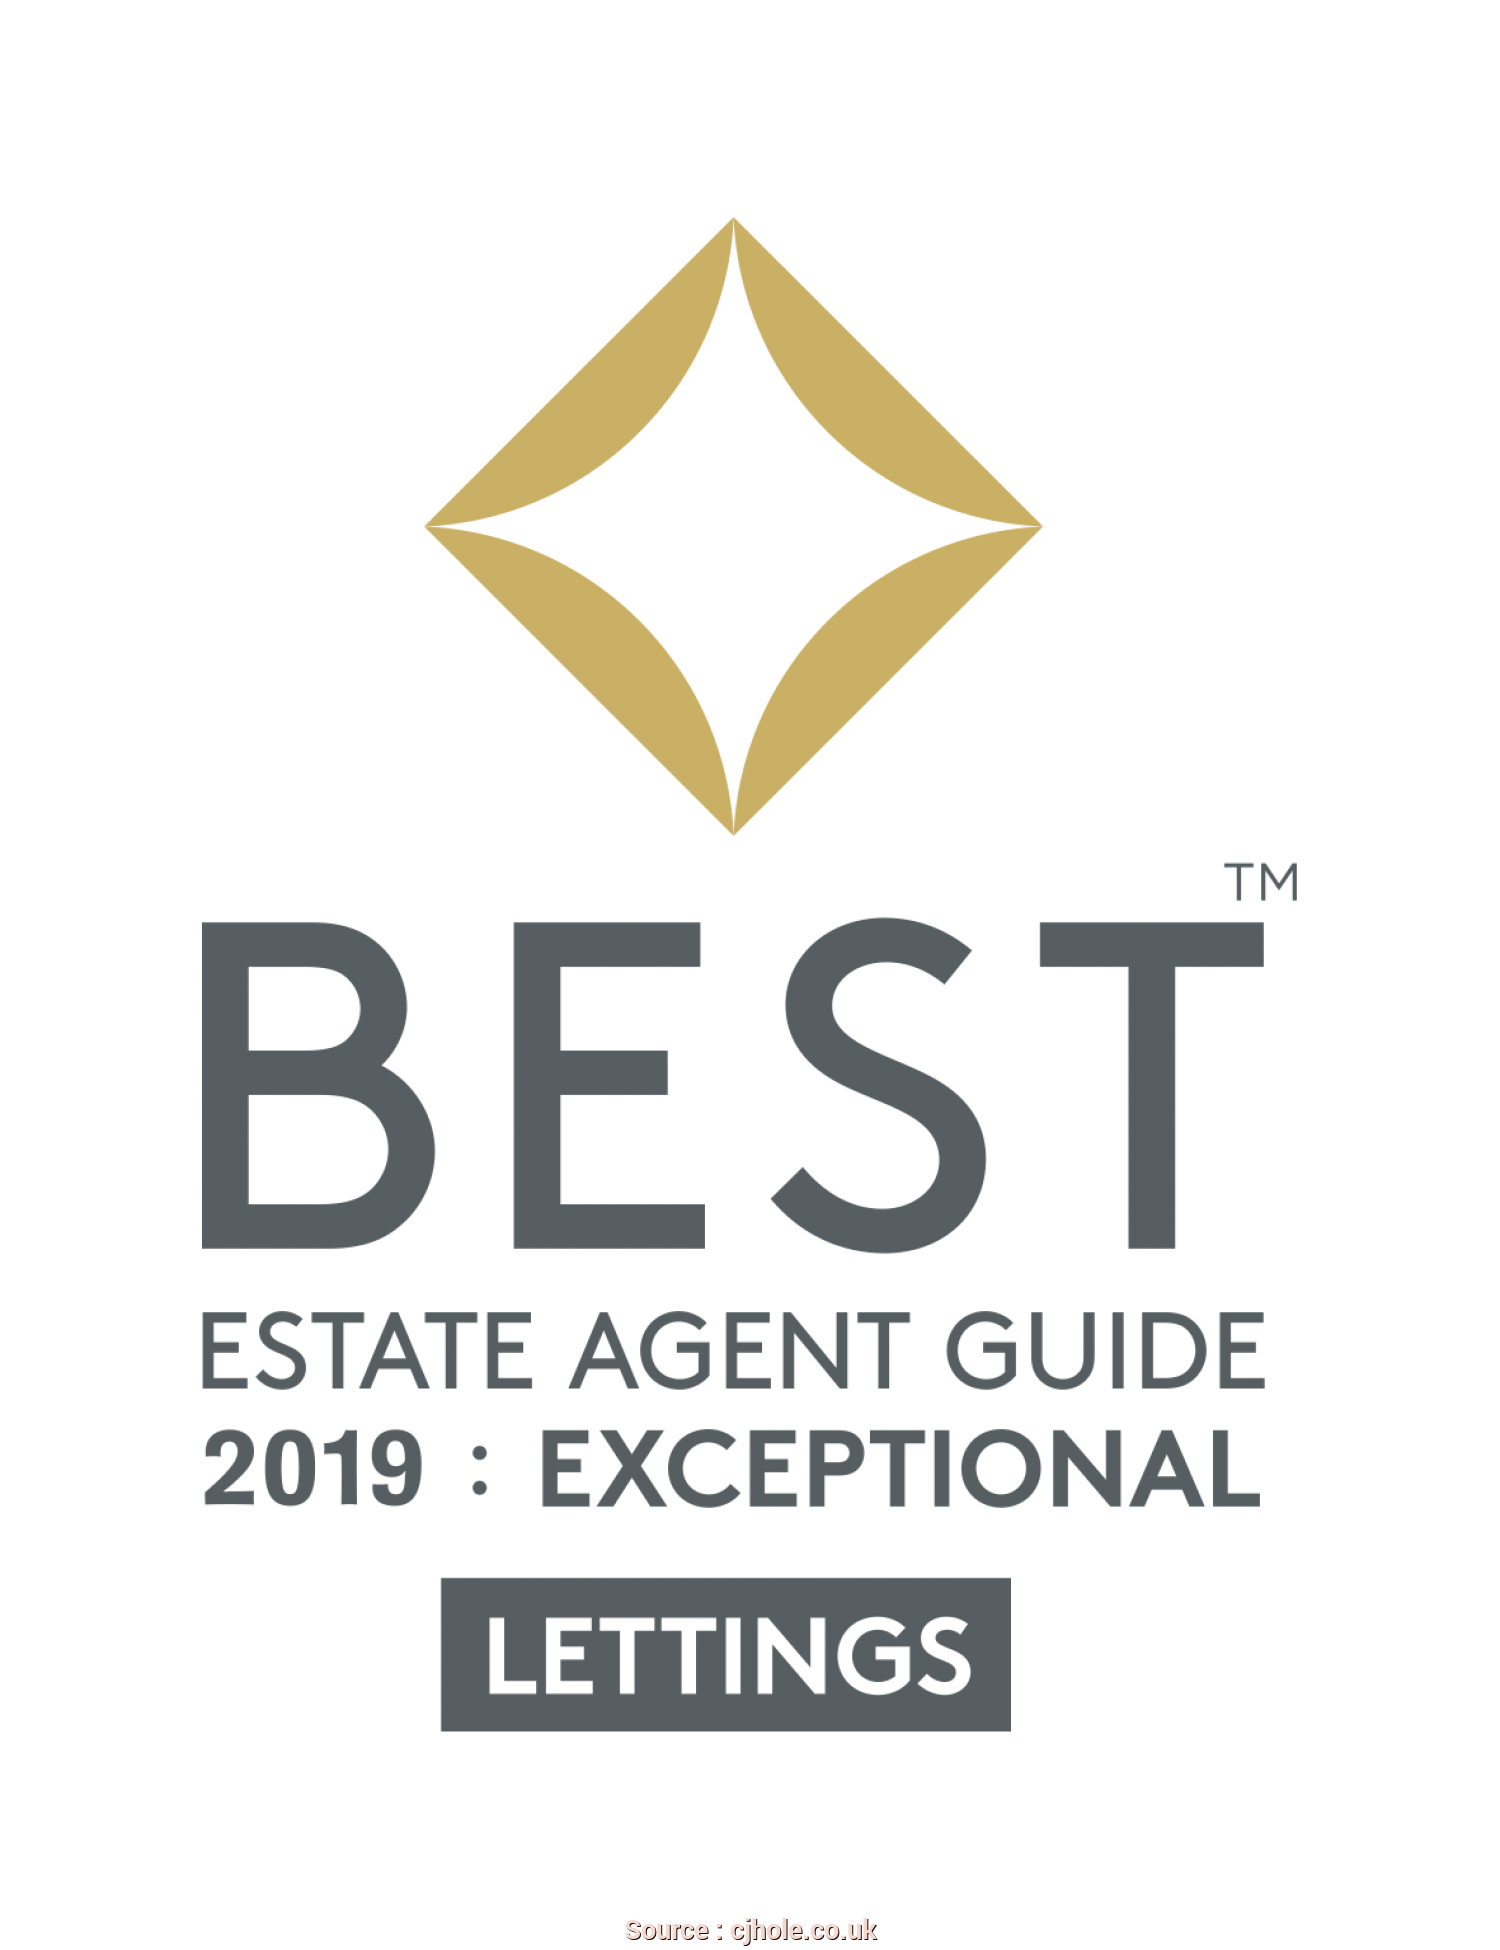 D Molteni Lettings, Bello Andy, Emma Especially Really Helped Us Keep Motivated, They Worked So Hard On Helping Us Through, Process., Recommend